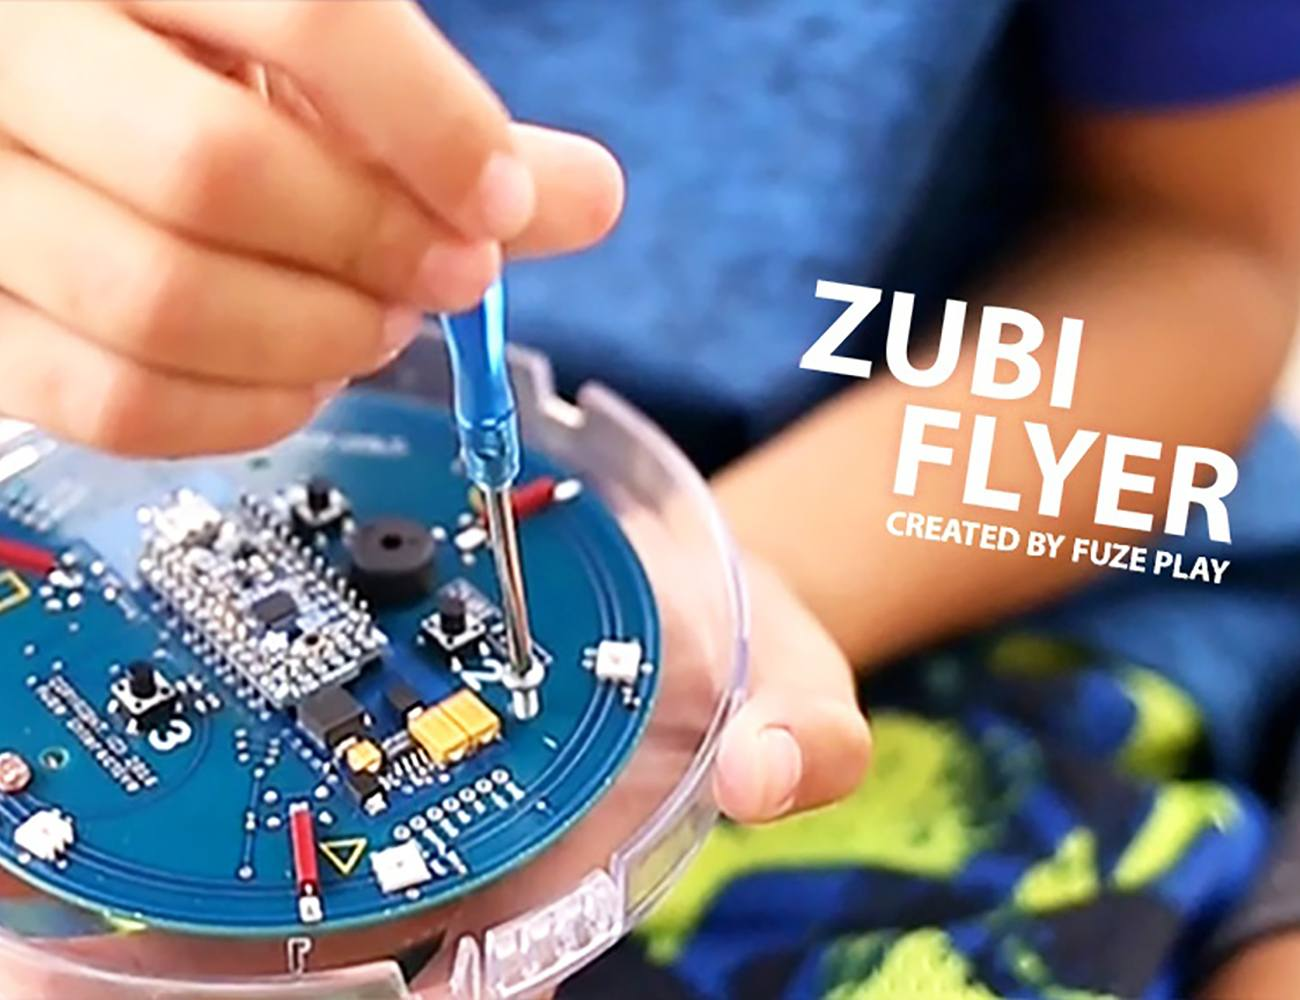 Zubi Flyer – The First Hackable Frisbee is Ready to Go